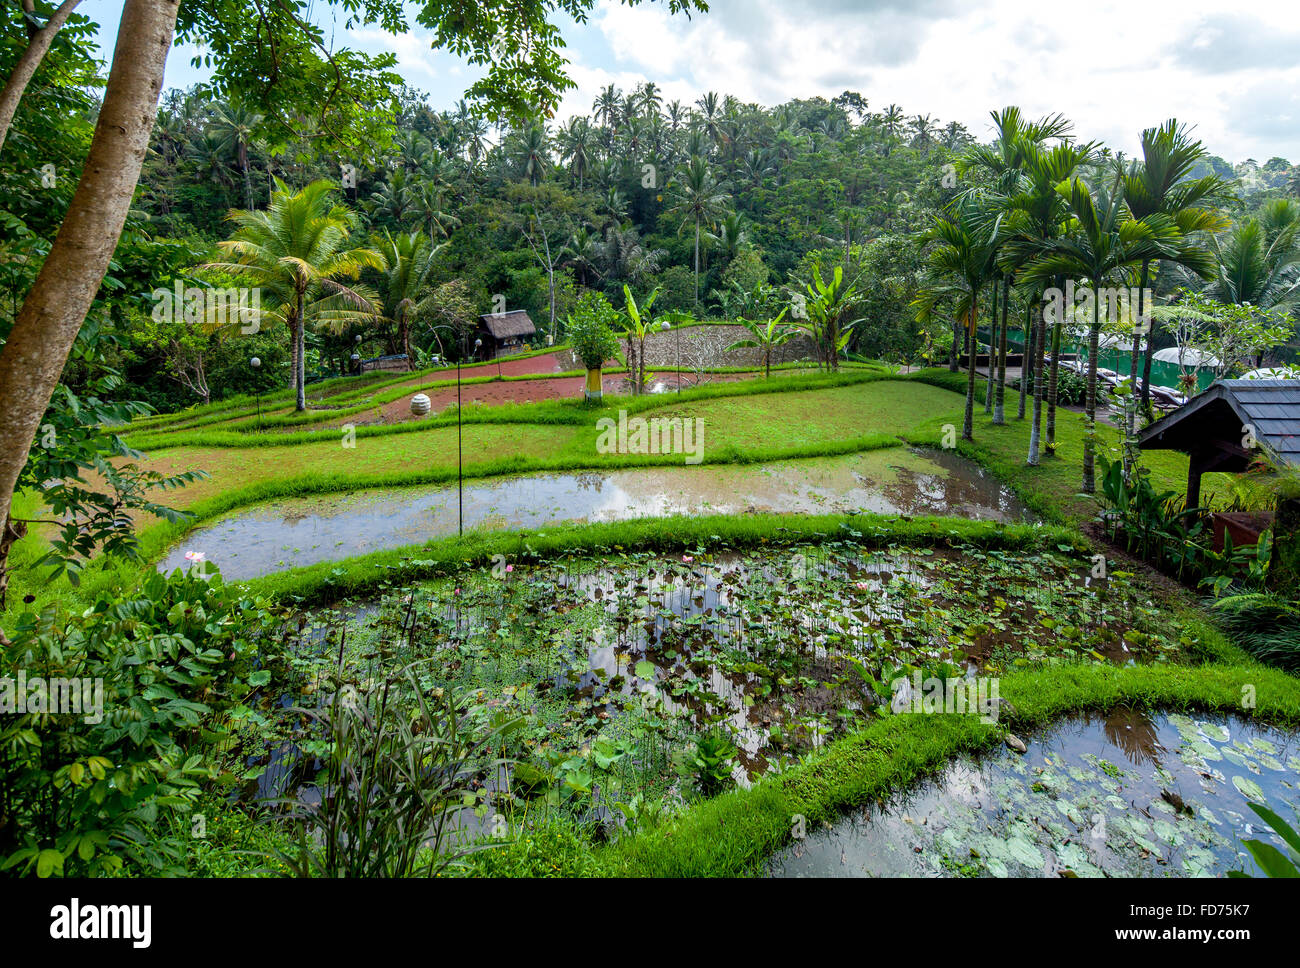 Hotel complex in a good city hotel in Ubud, palm trees, water surfaces, Ubud, Bali, Indonesia, Asia - Stock Image